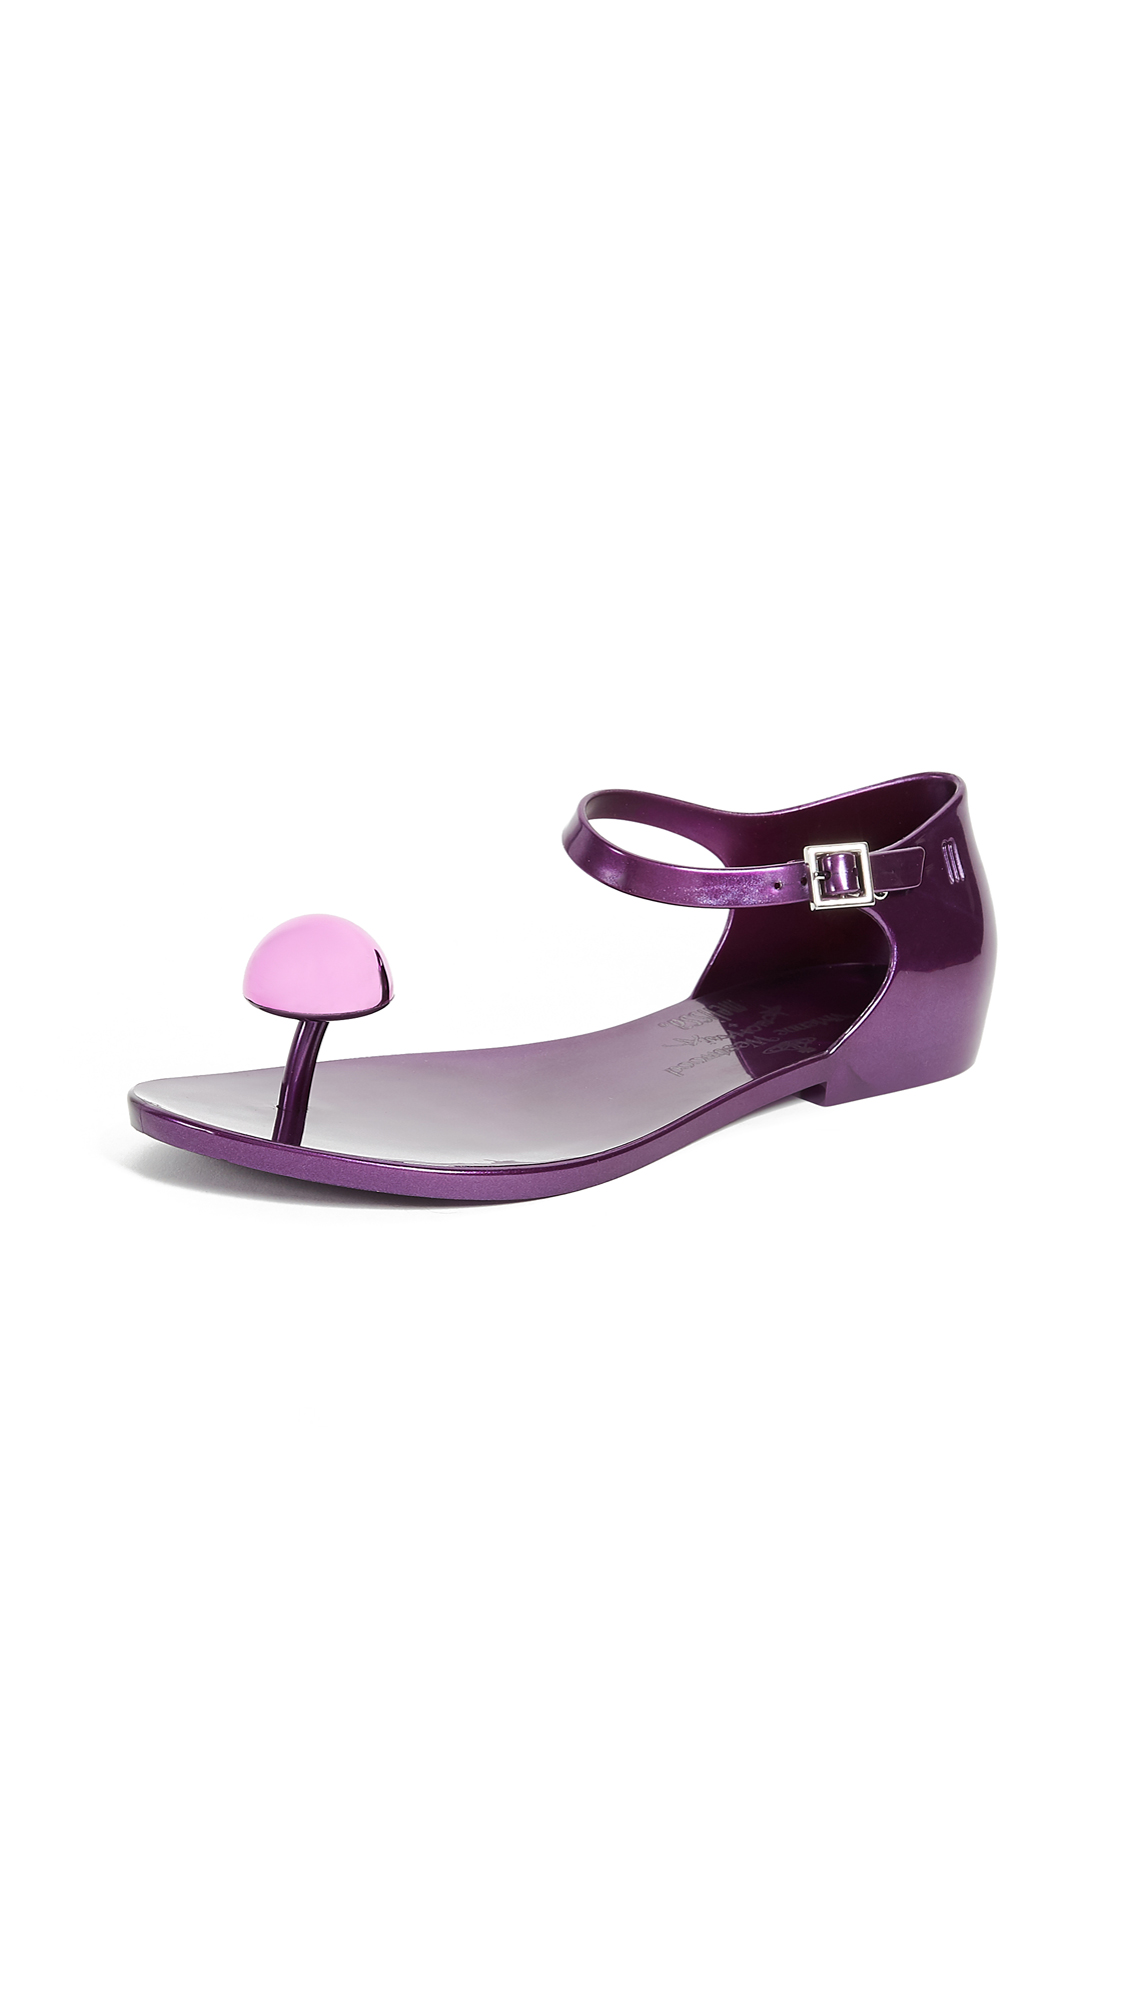 Melissa x Vivienne Westwood Honey Sandals - Deep Lilac Metallic